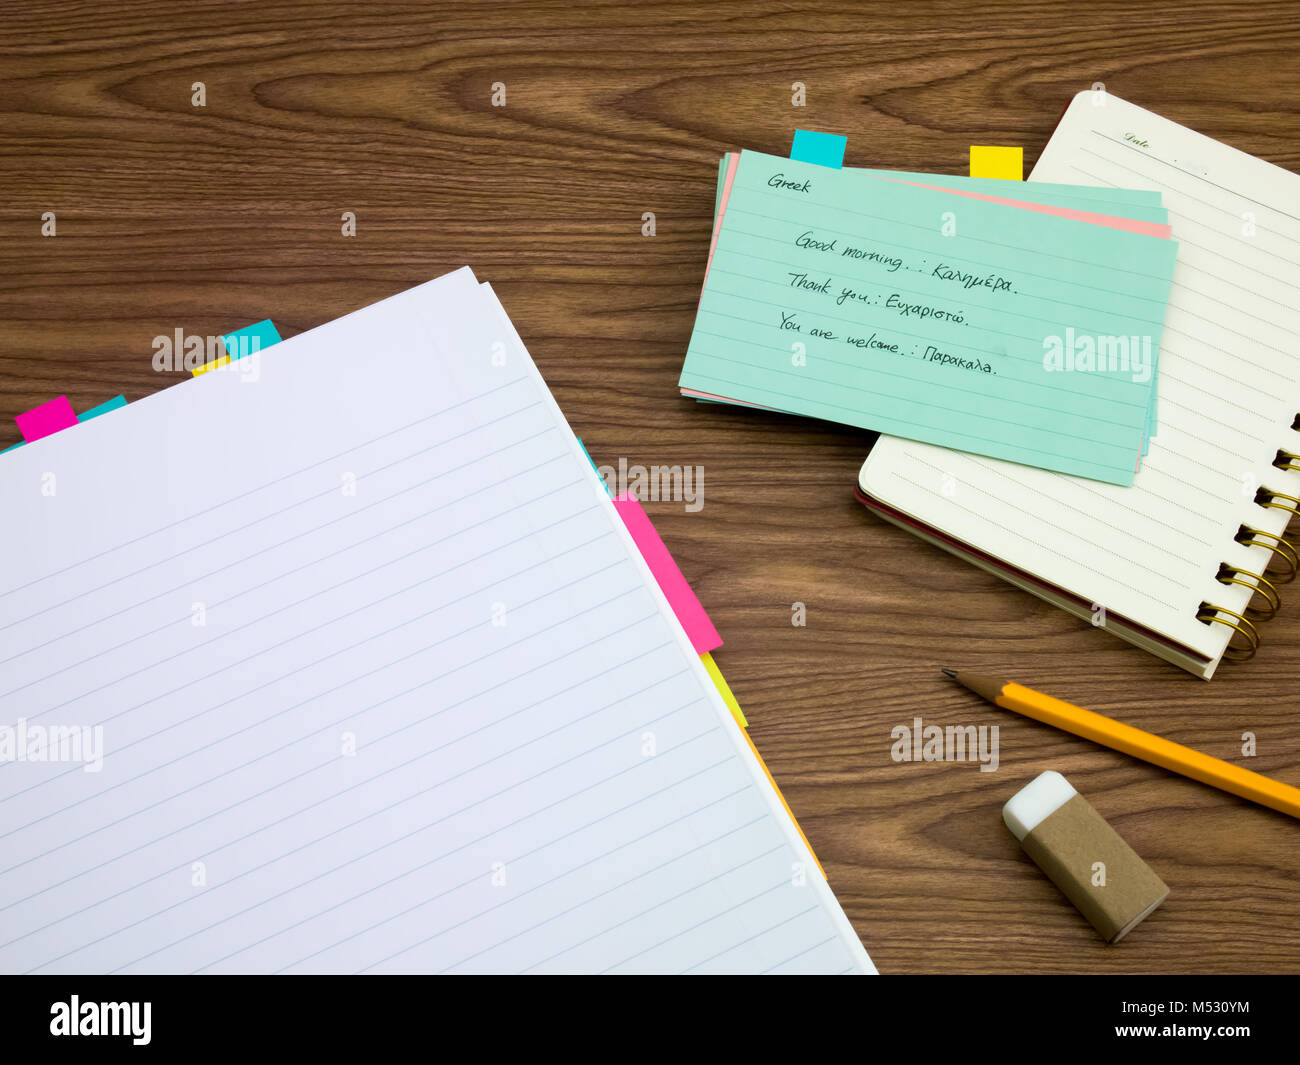 Greek; Learning New Language Writing Words on the Notebook - Stock Image